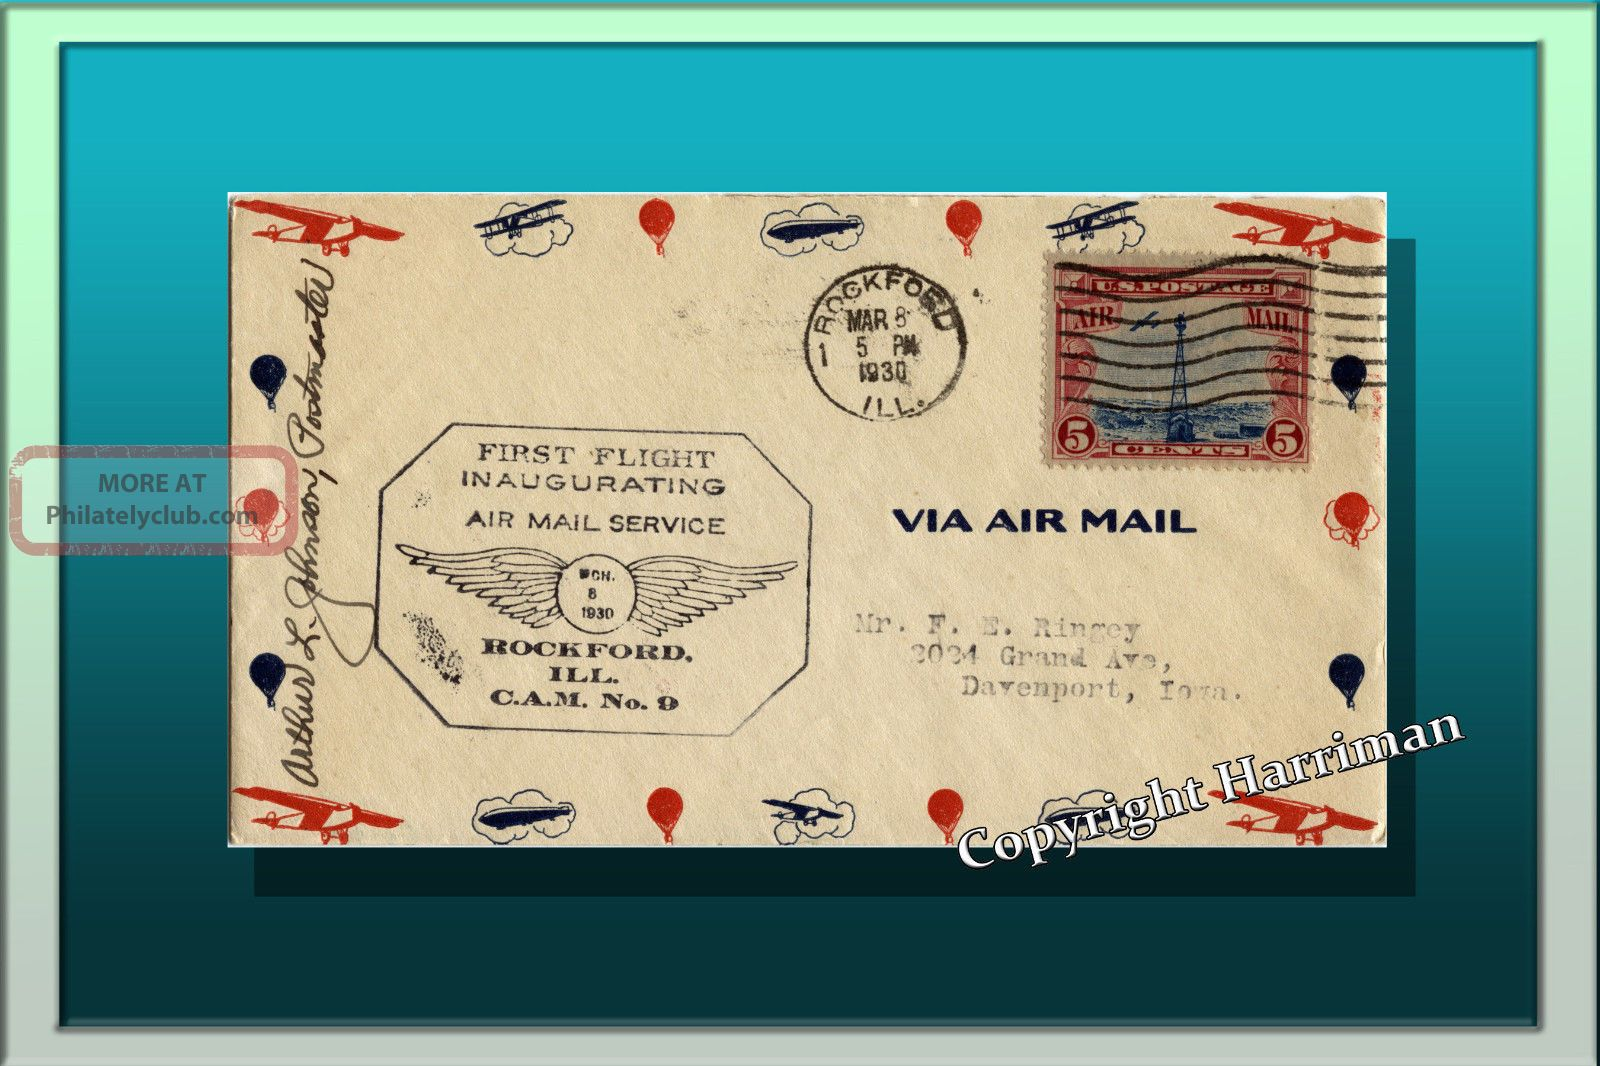 1930 Inaugurating Air Mail Service From Rockford Ill To Davenport Iowa Rare Worldwide photo